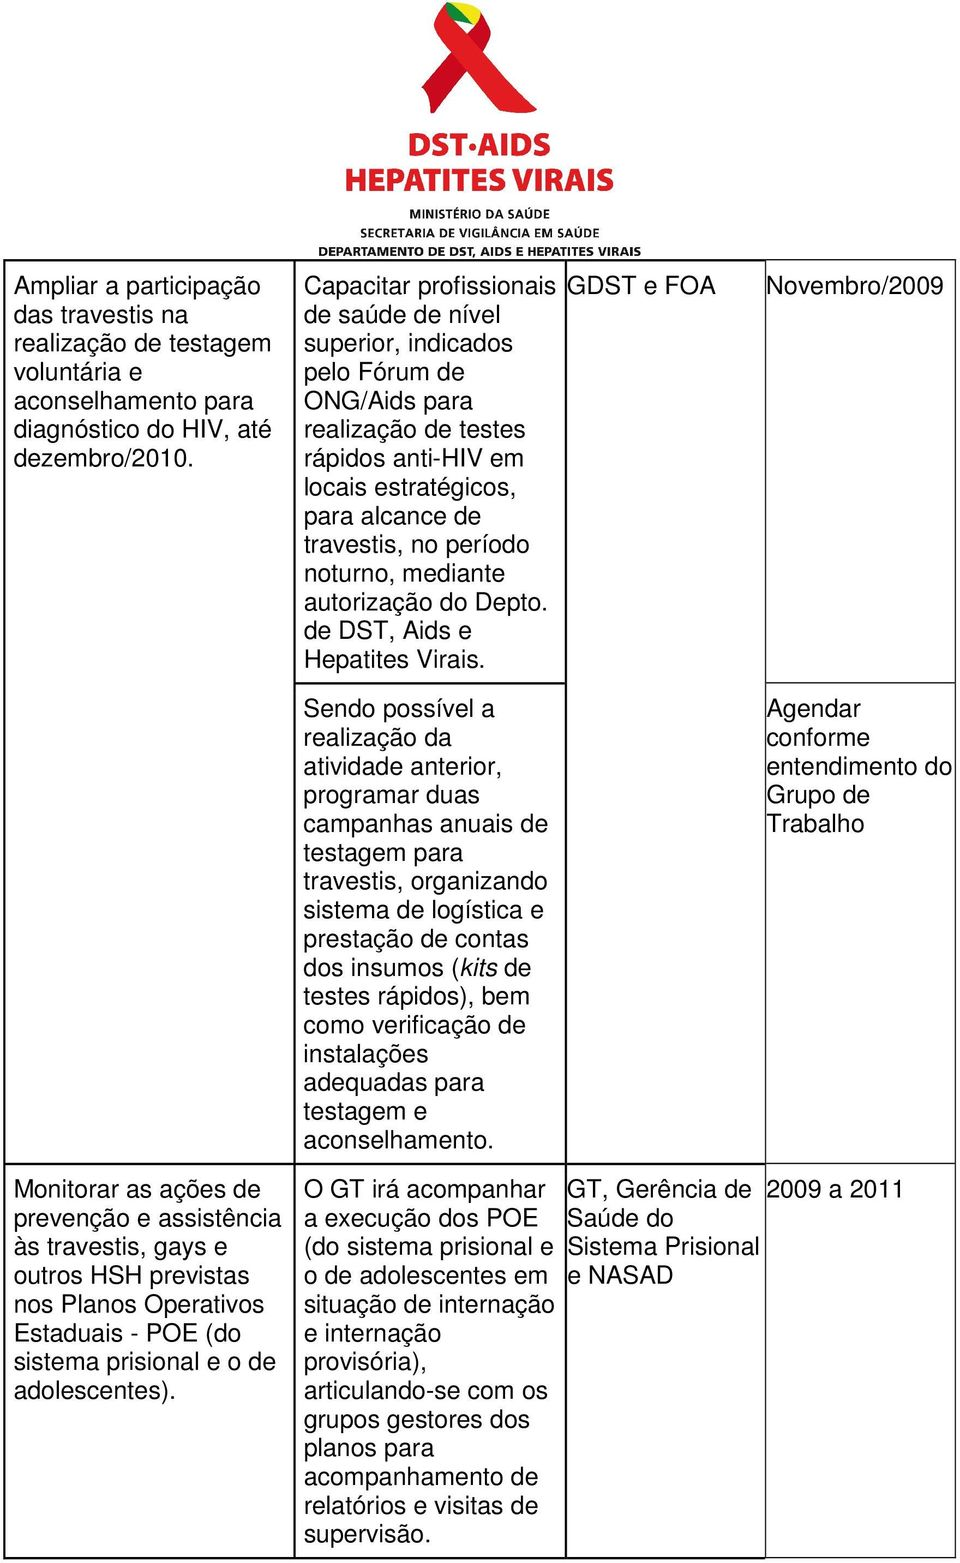 mediante autorização do Depto. de DST, Aids e Hepatites Virais.